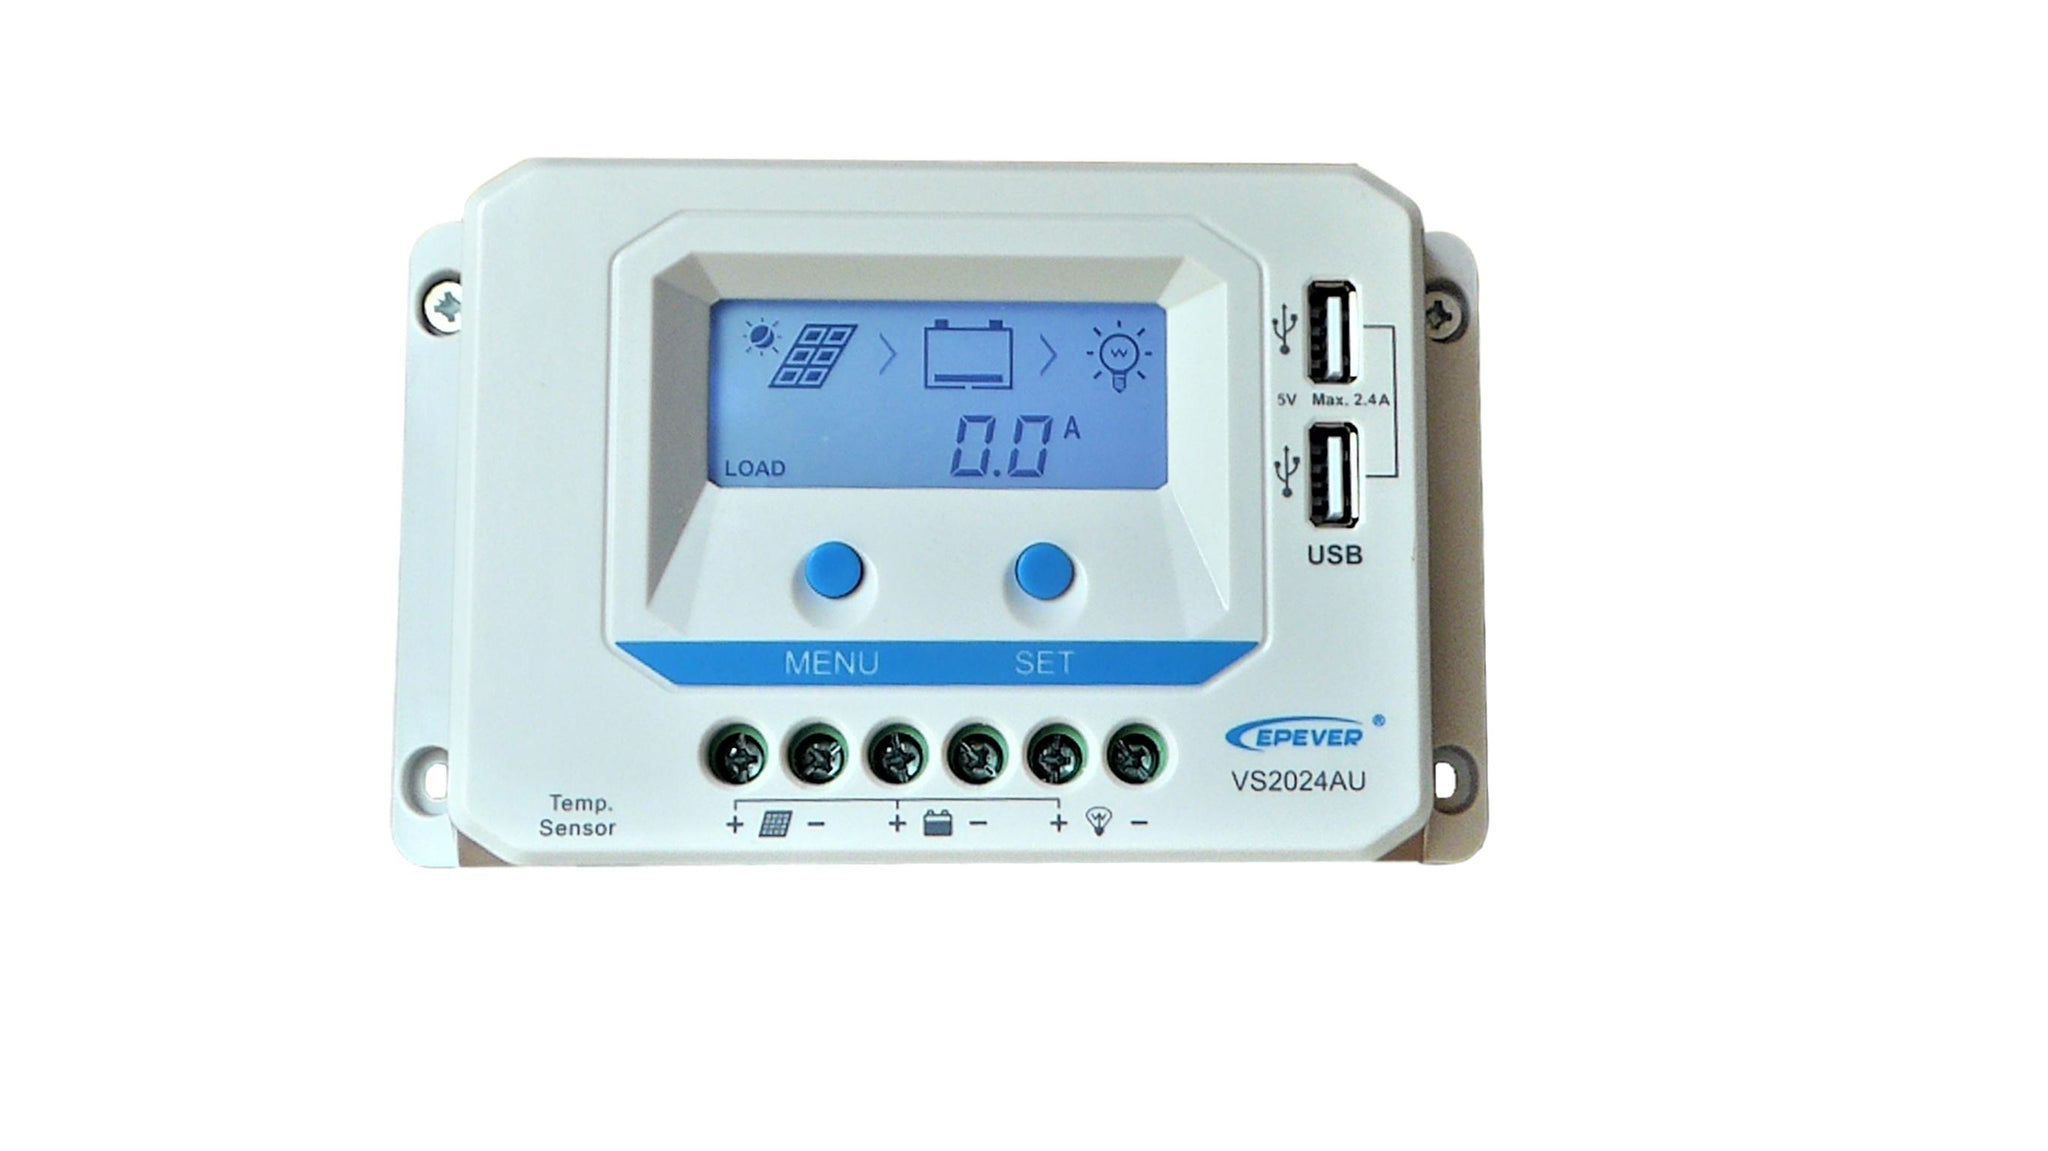 20A PWM Solar Regulator with large LCD screen - FLEXOPOWER ZA